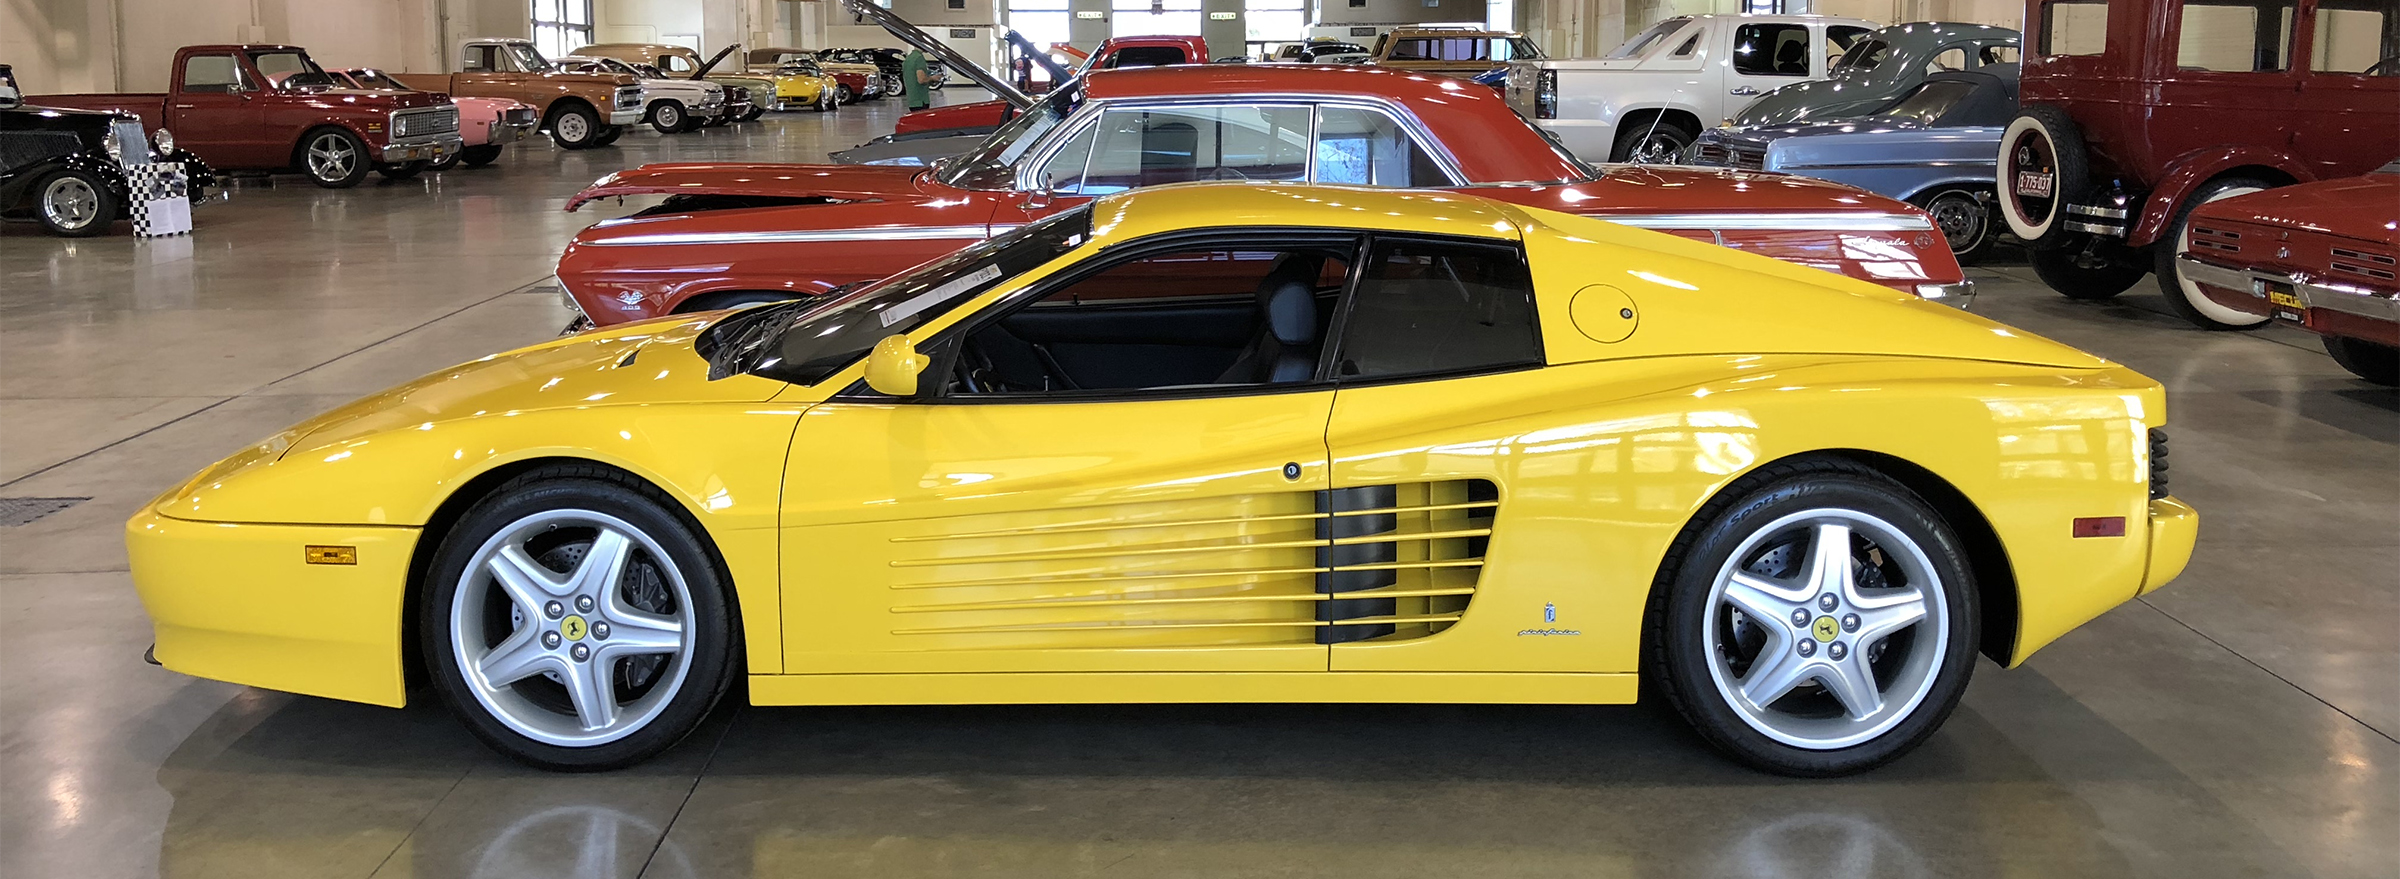 Crane's choices at Mecum Auctions LA | ClassicCars.com Journal